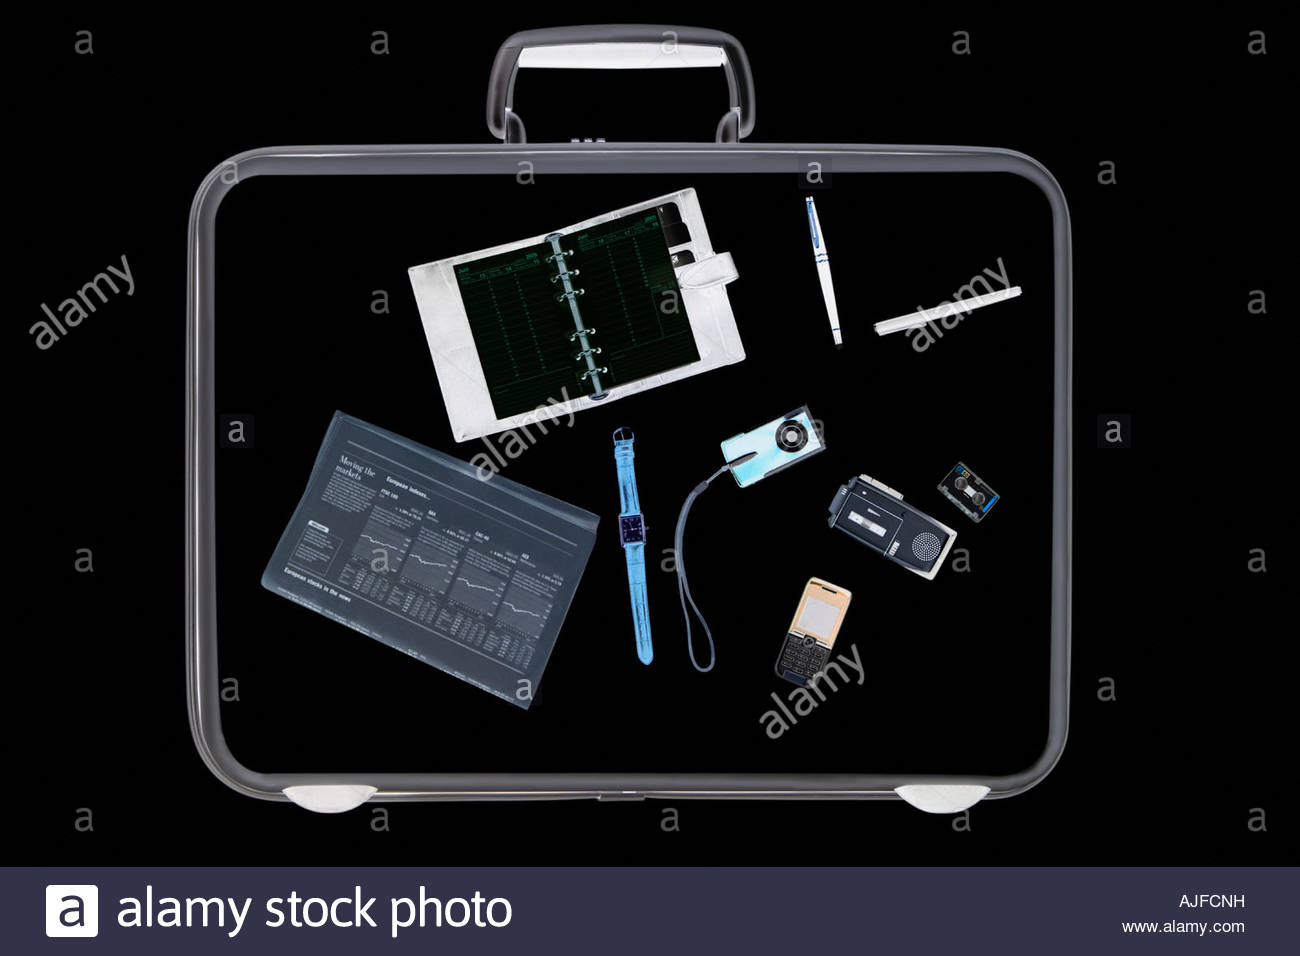 X Ray Security Stock Photos Amp X Ray Security Stock Images